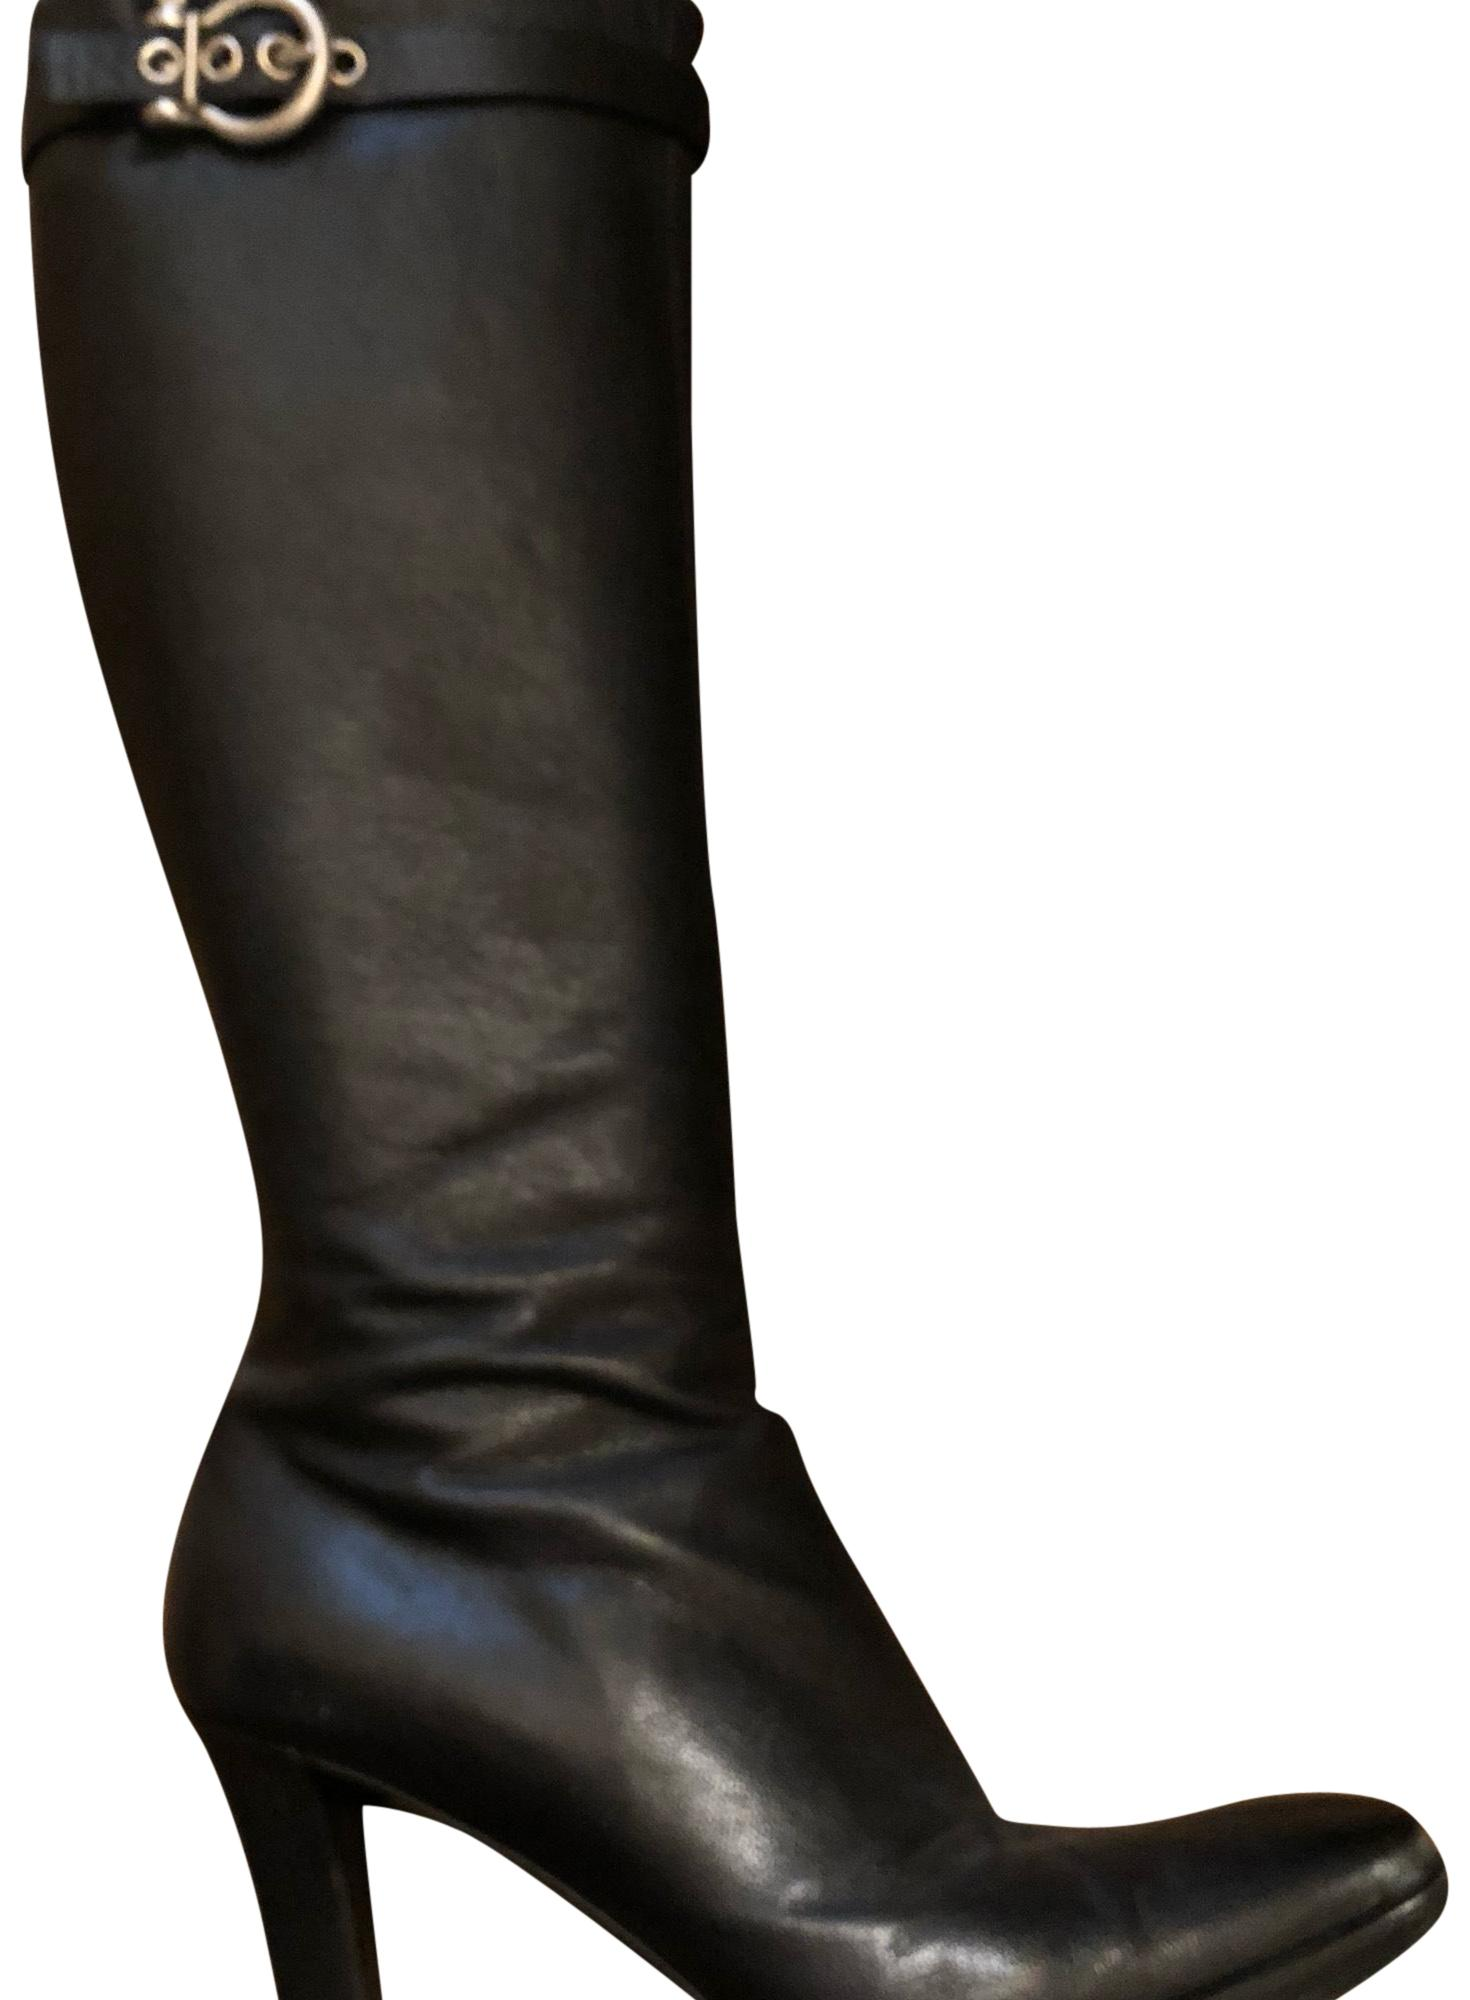 Burberry Black Boots/Booties Size US 9.5 Regular (M, B)